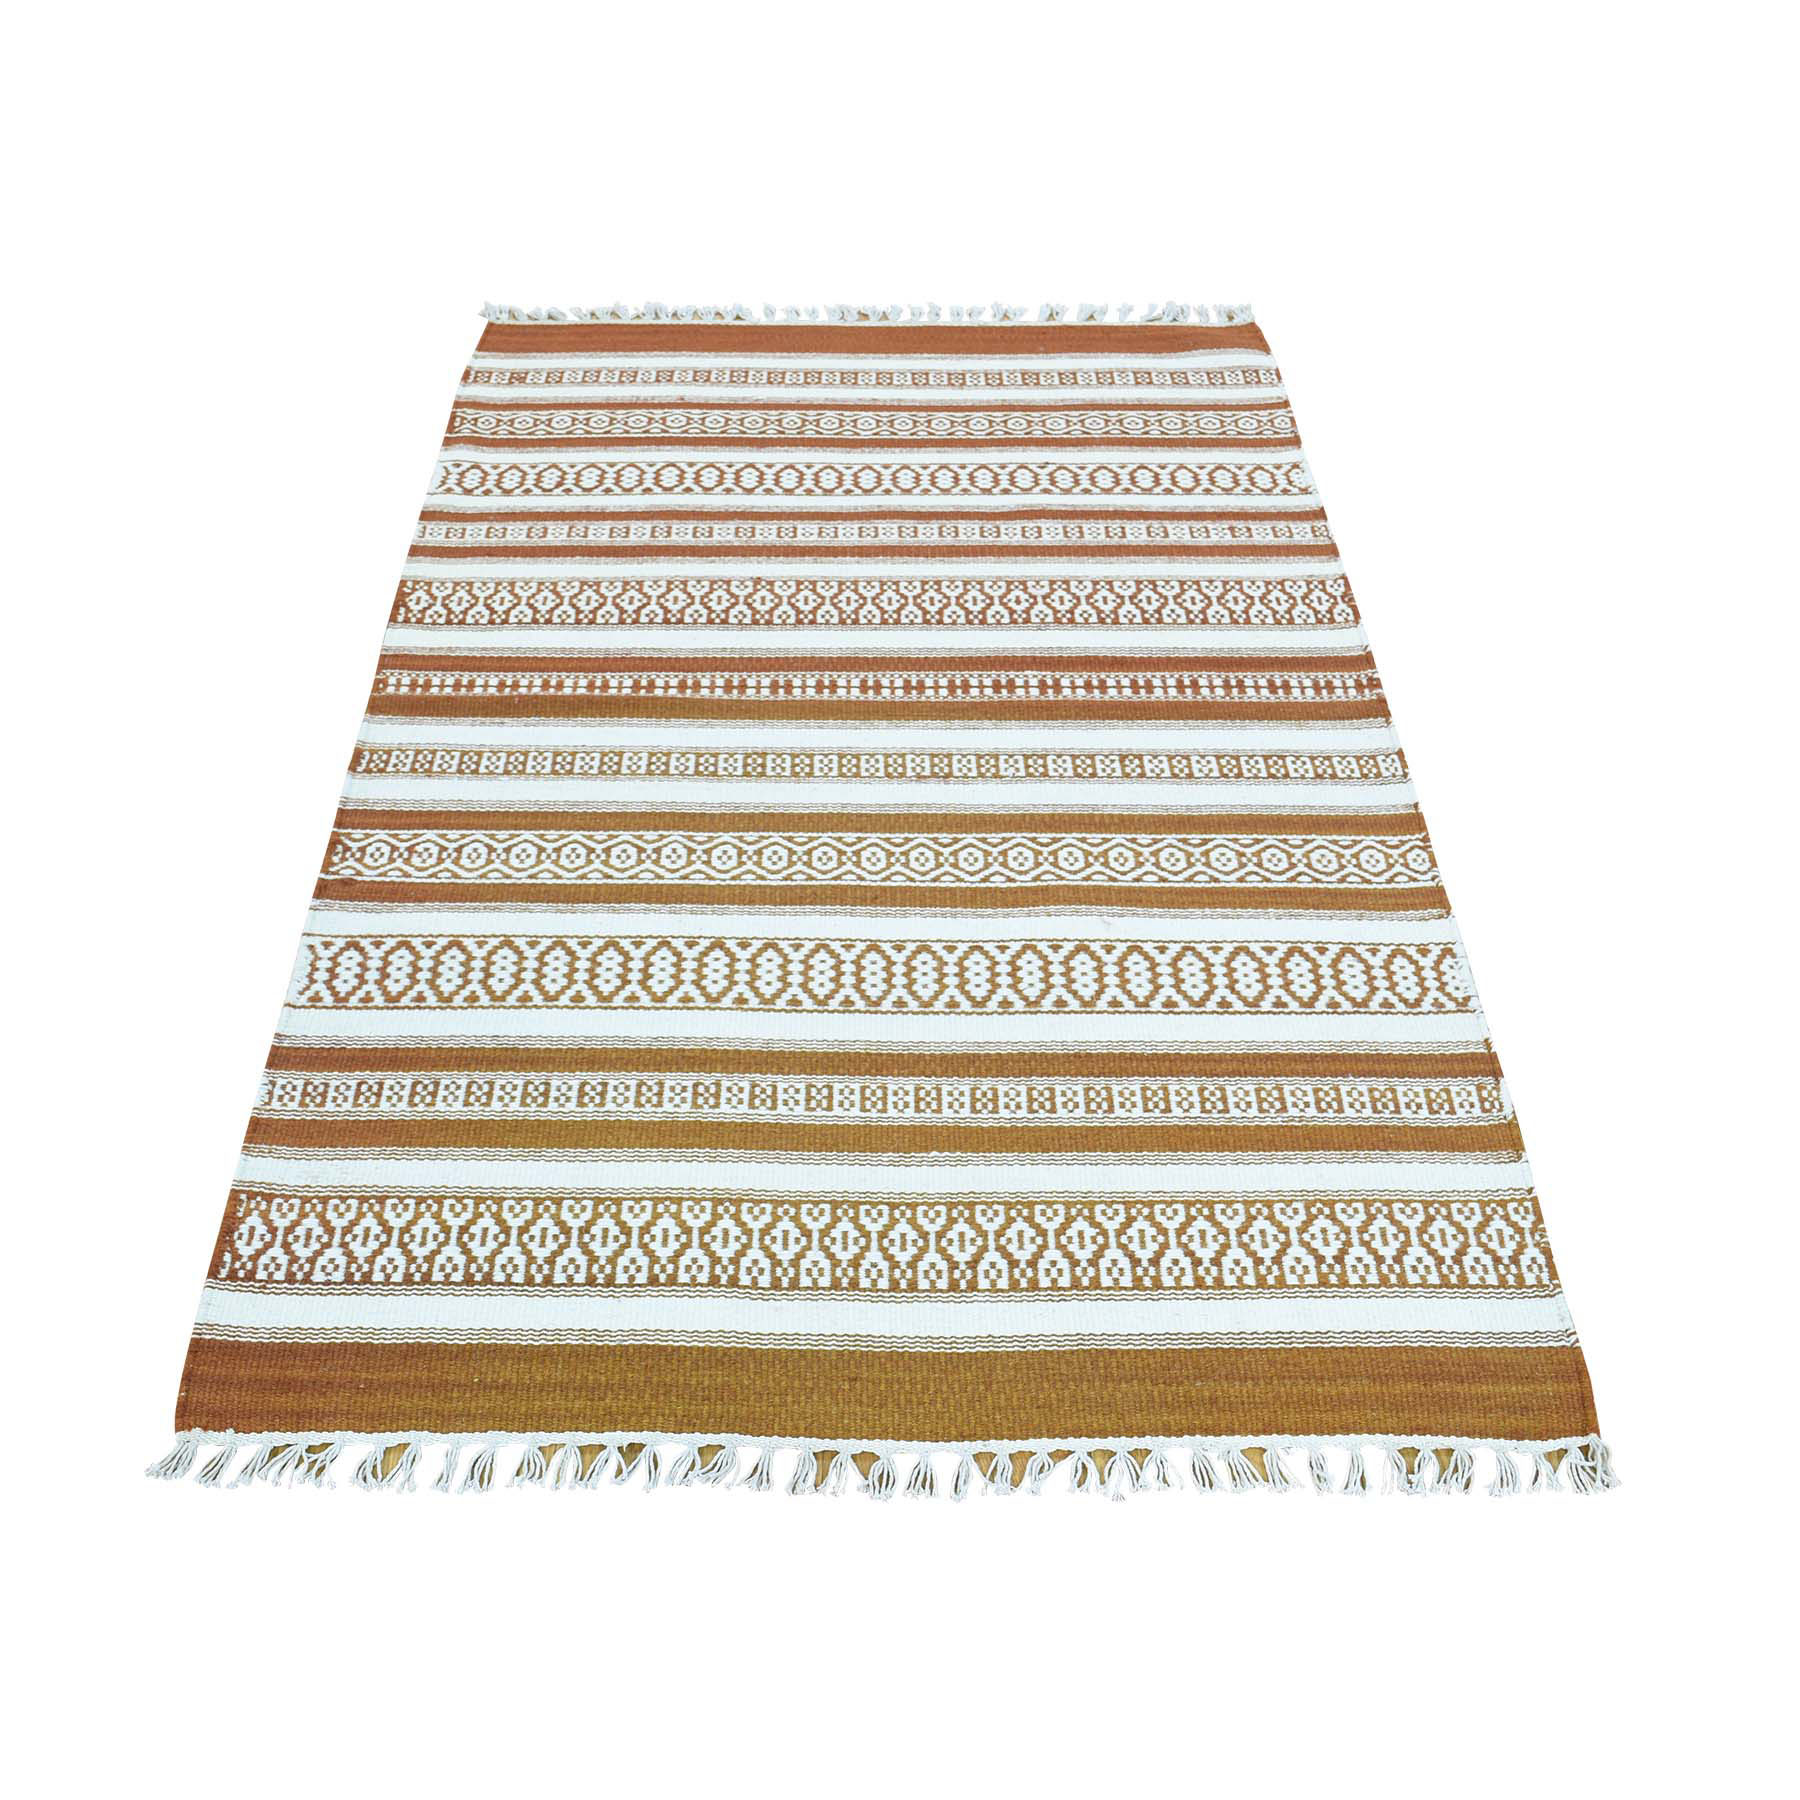 3'X5' Flat Weave Hand-Woven Reversible Striped Kilim Pure Wool Rug moaca86a